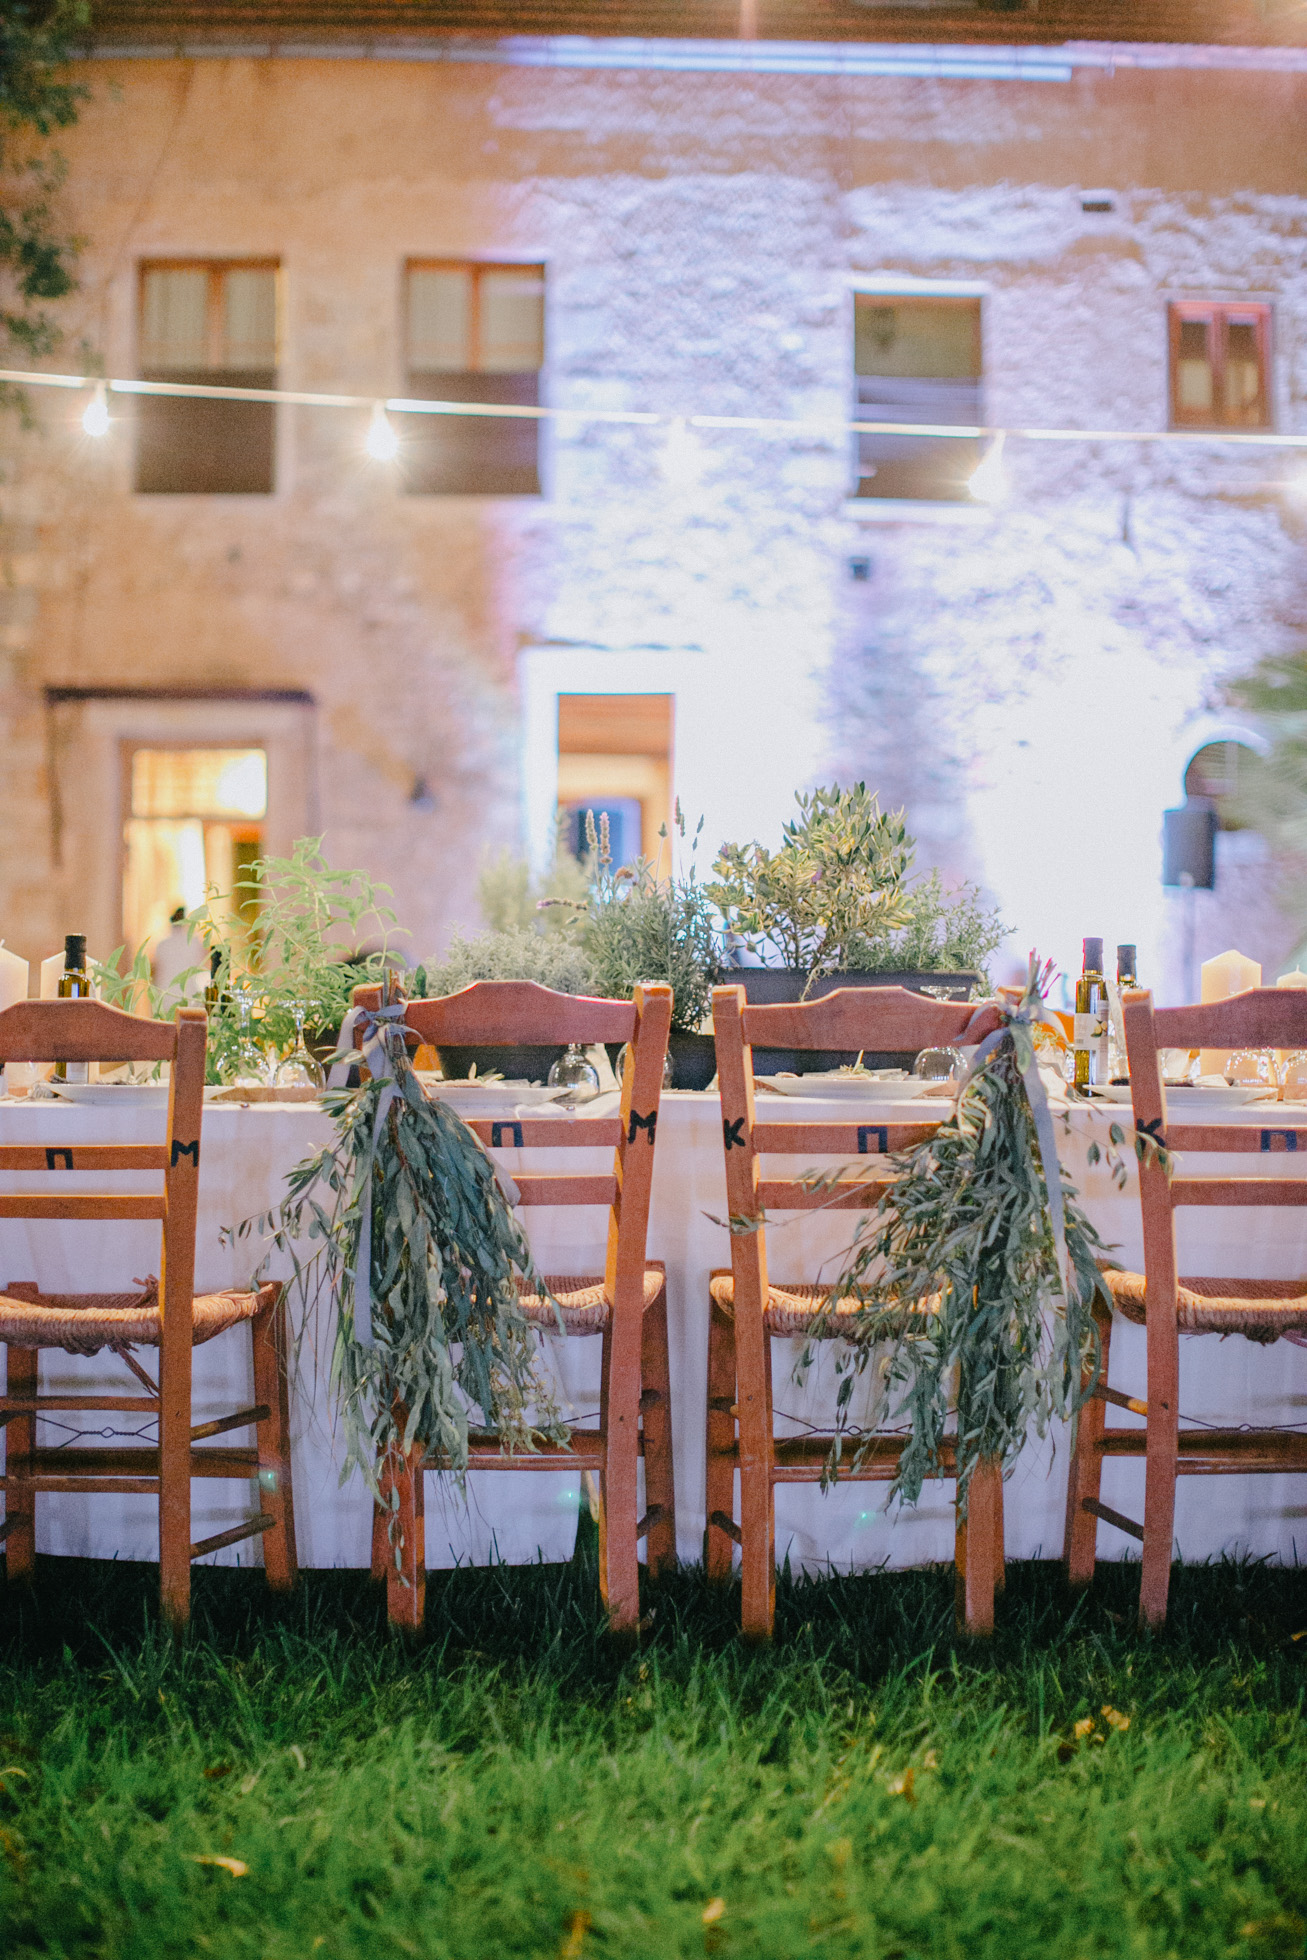 Rich wedding reception dinner setup for an exclusive wedding event in Metohi Kindelis, Chania, Crete photographed by professional photographer team.